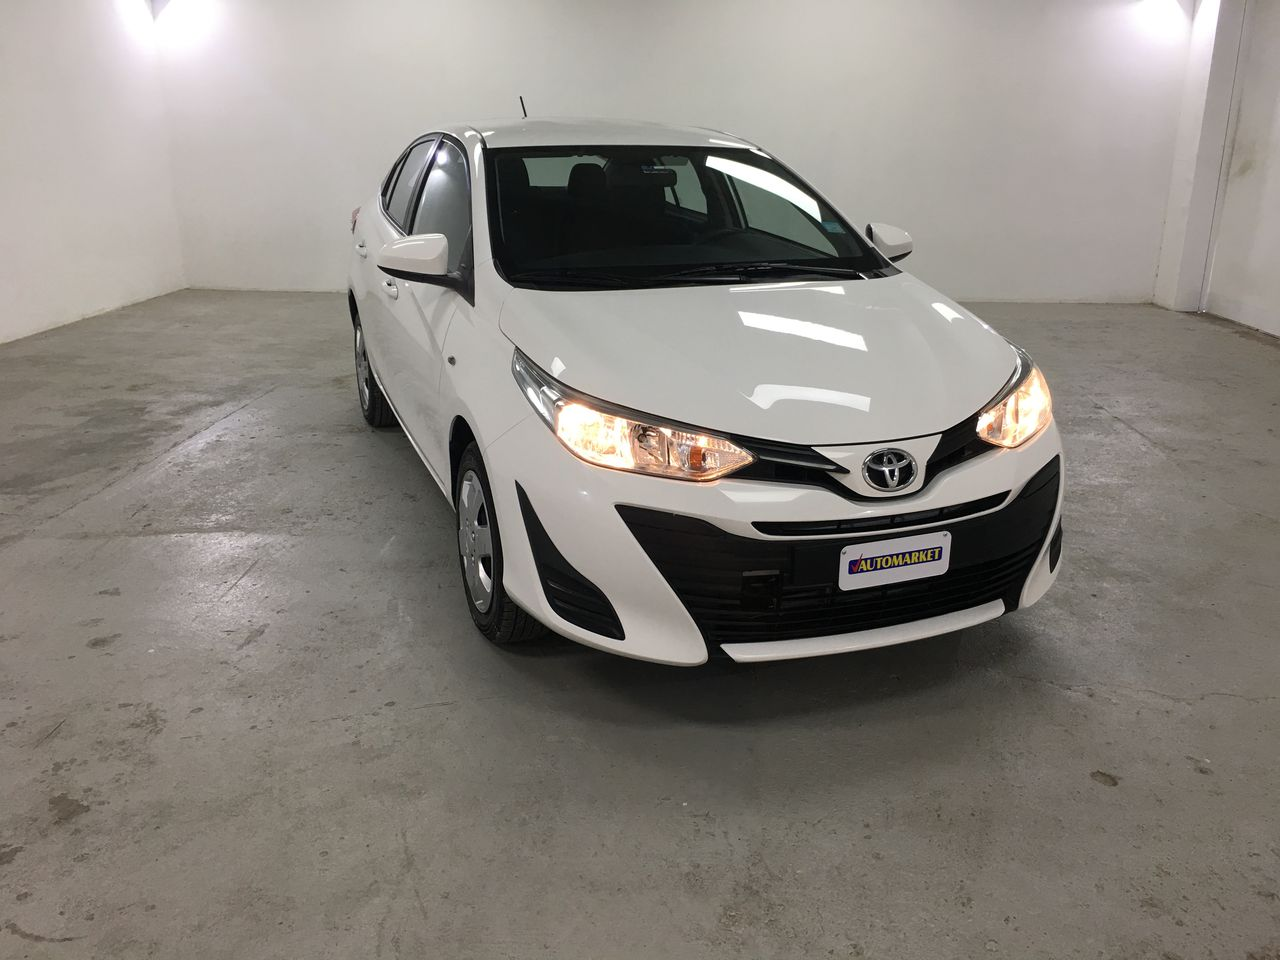 TOYOTA YARIS SUPER WHITE II 2018 CL6419